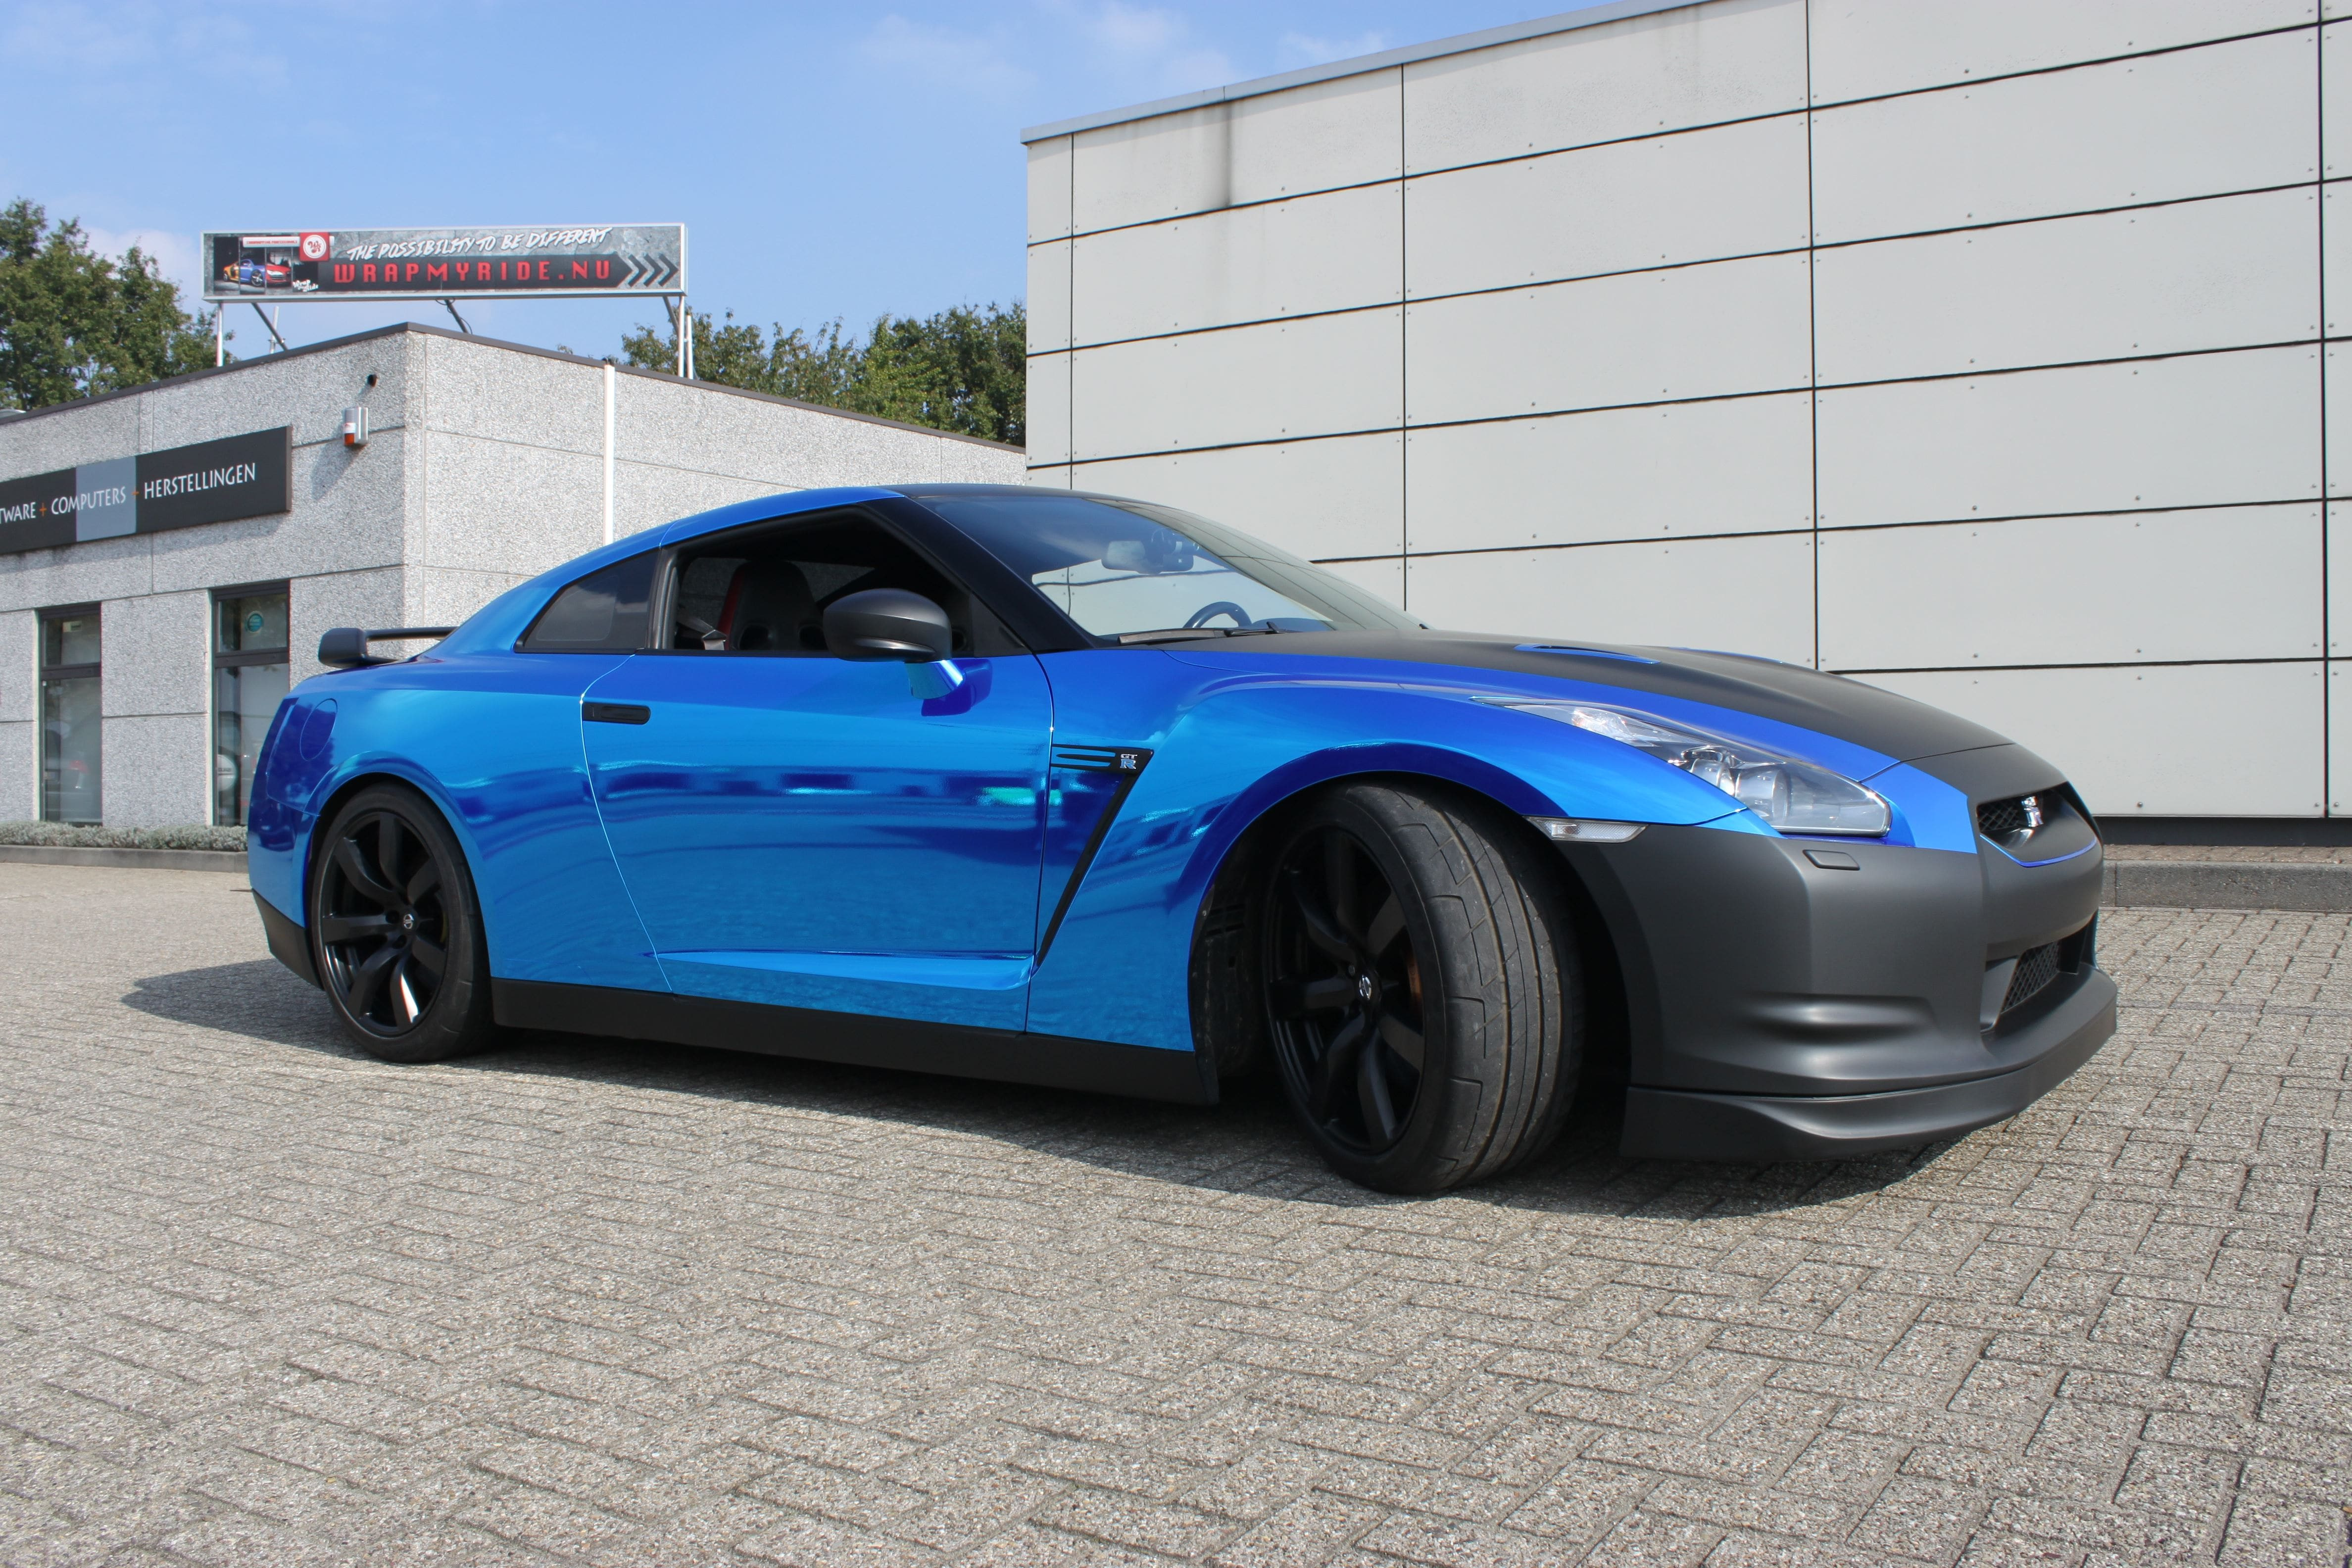 Nissan GT-R met Blue Chrome Wrap, Carwrapping door Wrapmyride.nu Foto-nr:6476, ©2020